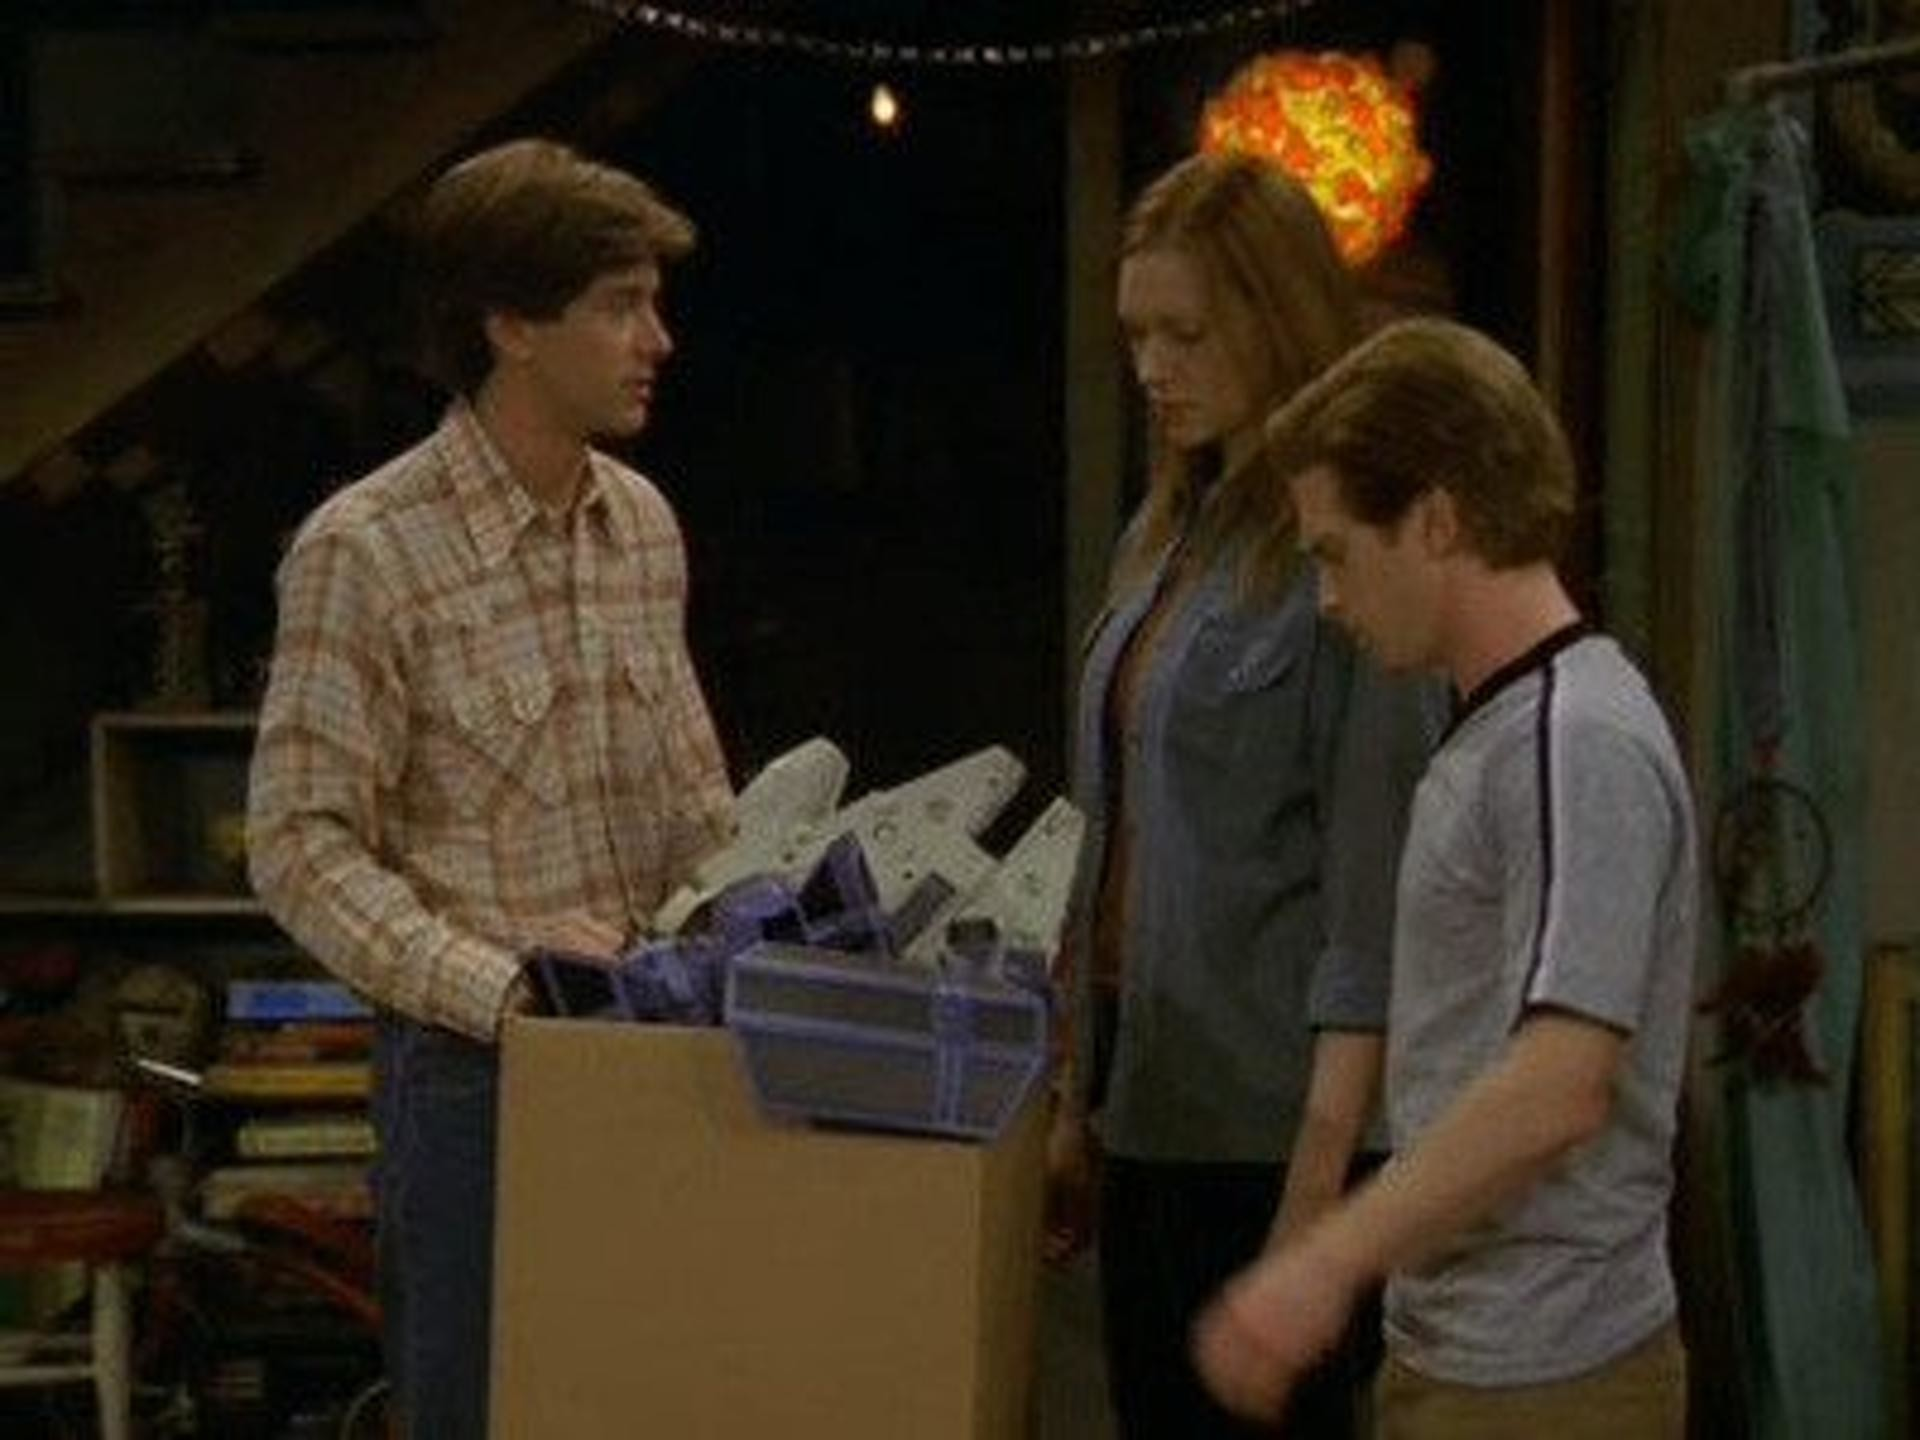 1920x1440 That 70s Show S06E20 Squeezebox Summary Season 6 Episode 20 Guide